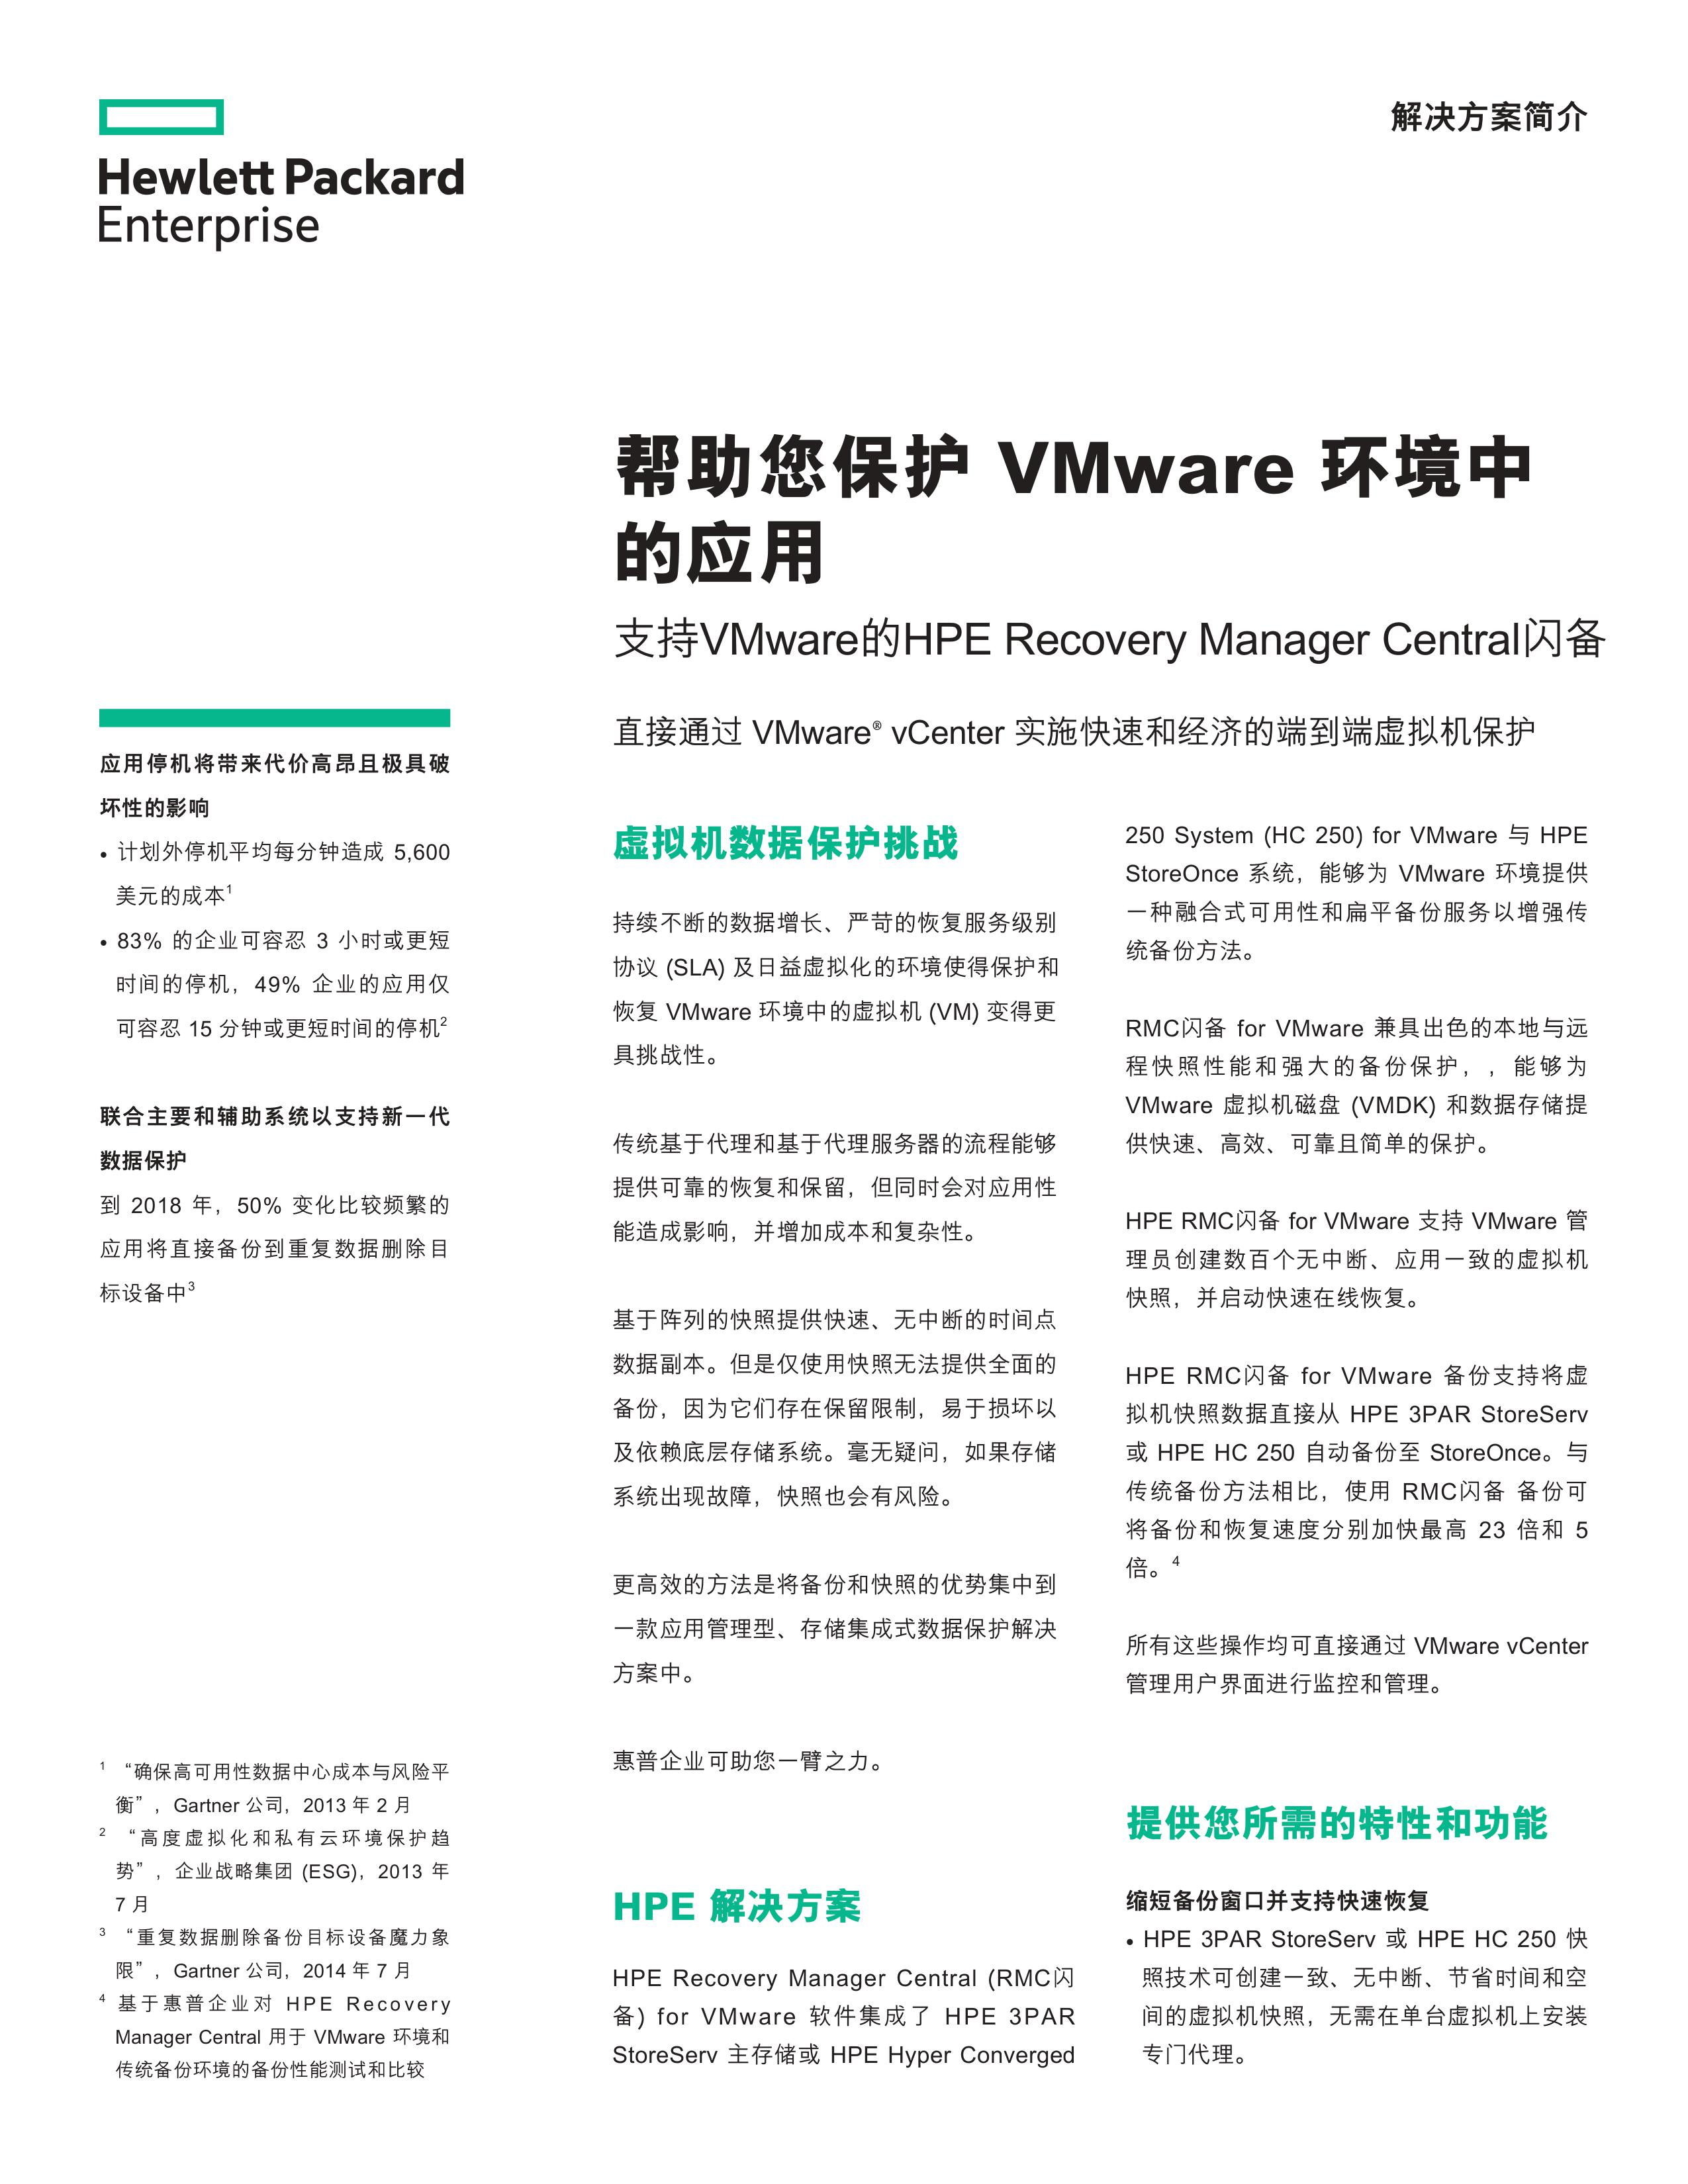 HPE Recovery_Manager_Central for VMware解决方案